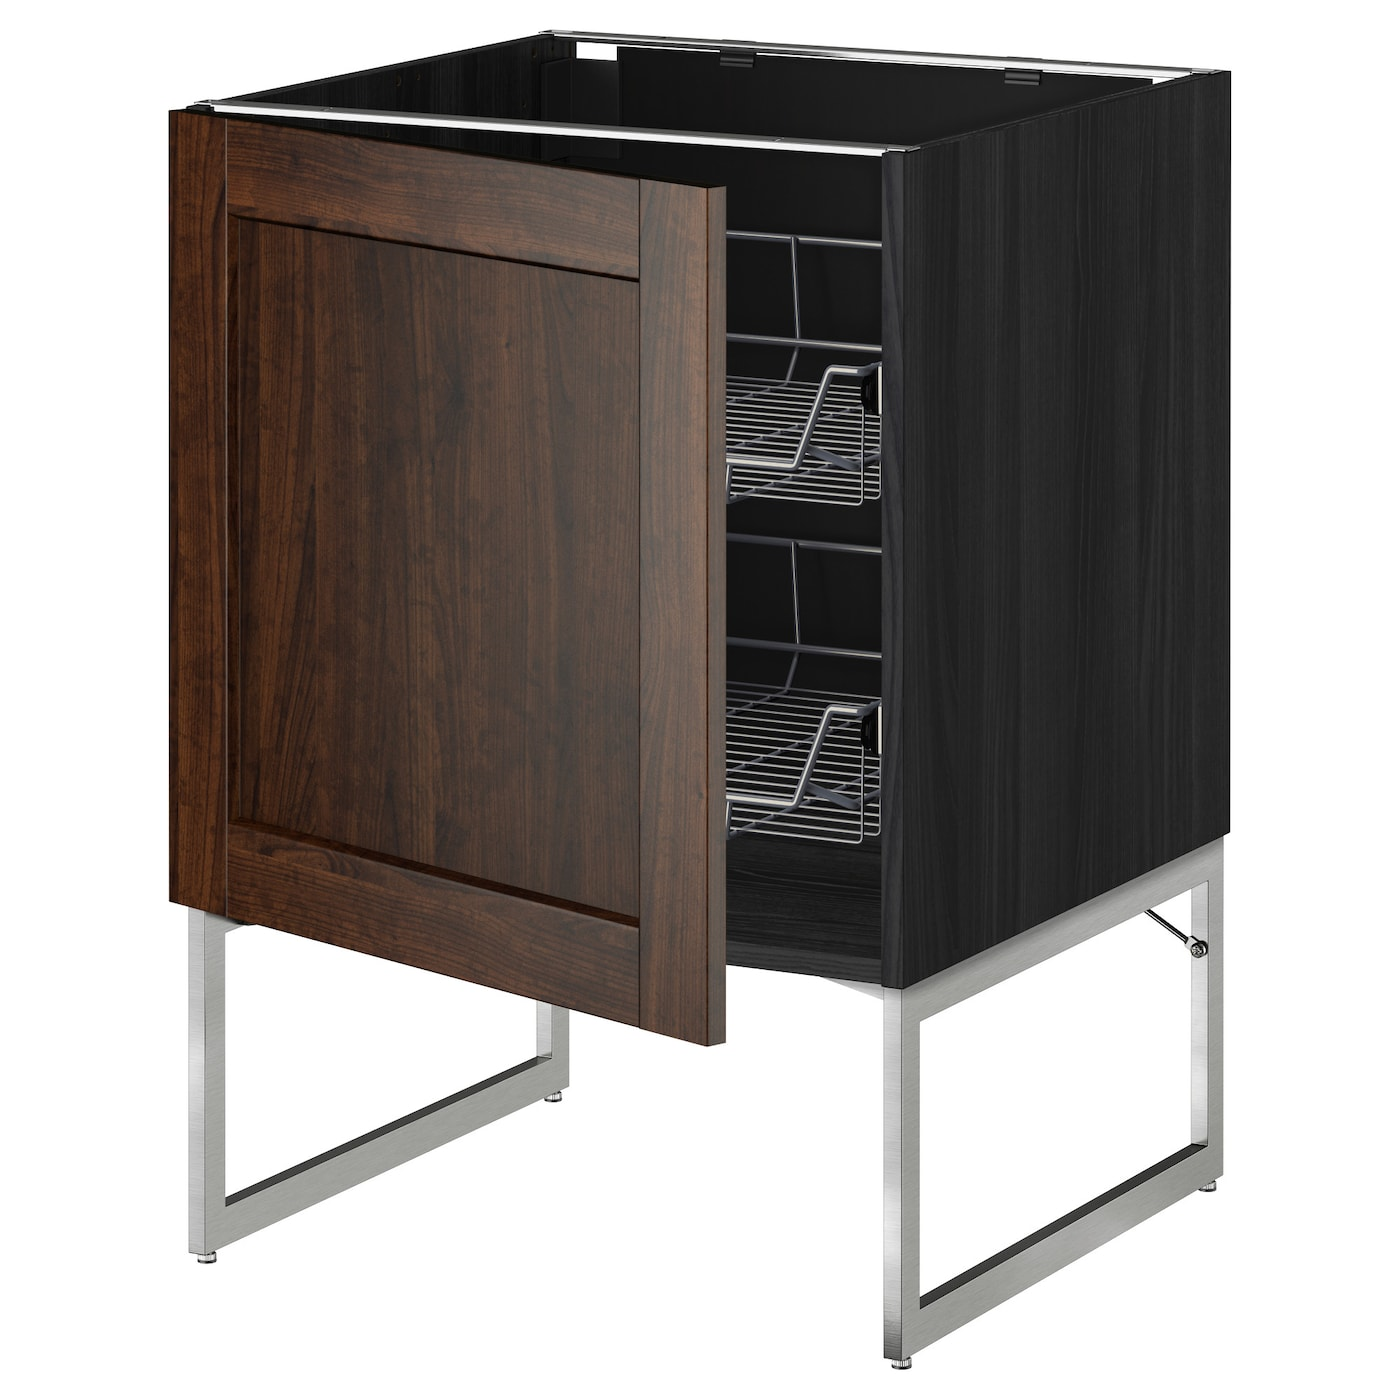 Metod base cabinet with wire baskets black edserum brown for Ikea kuche metod